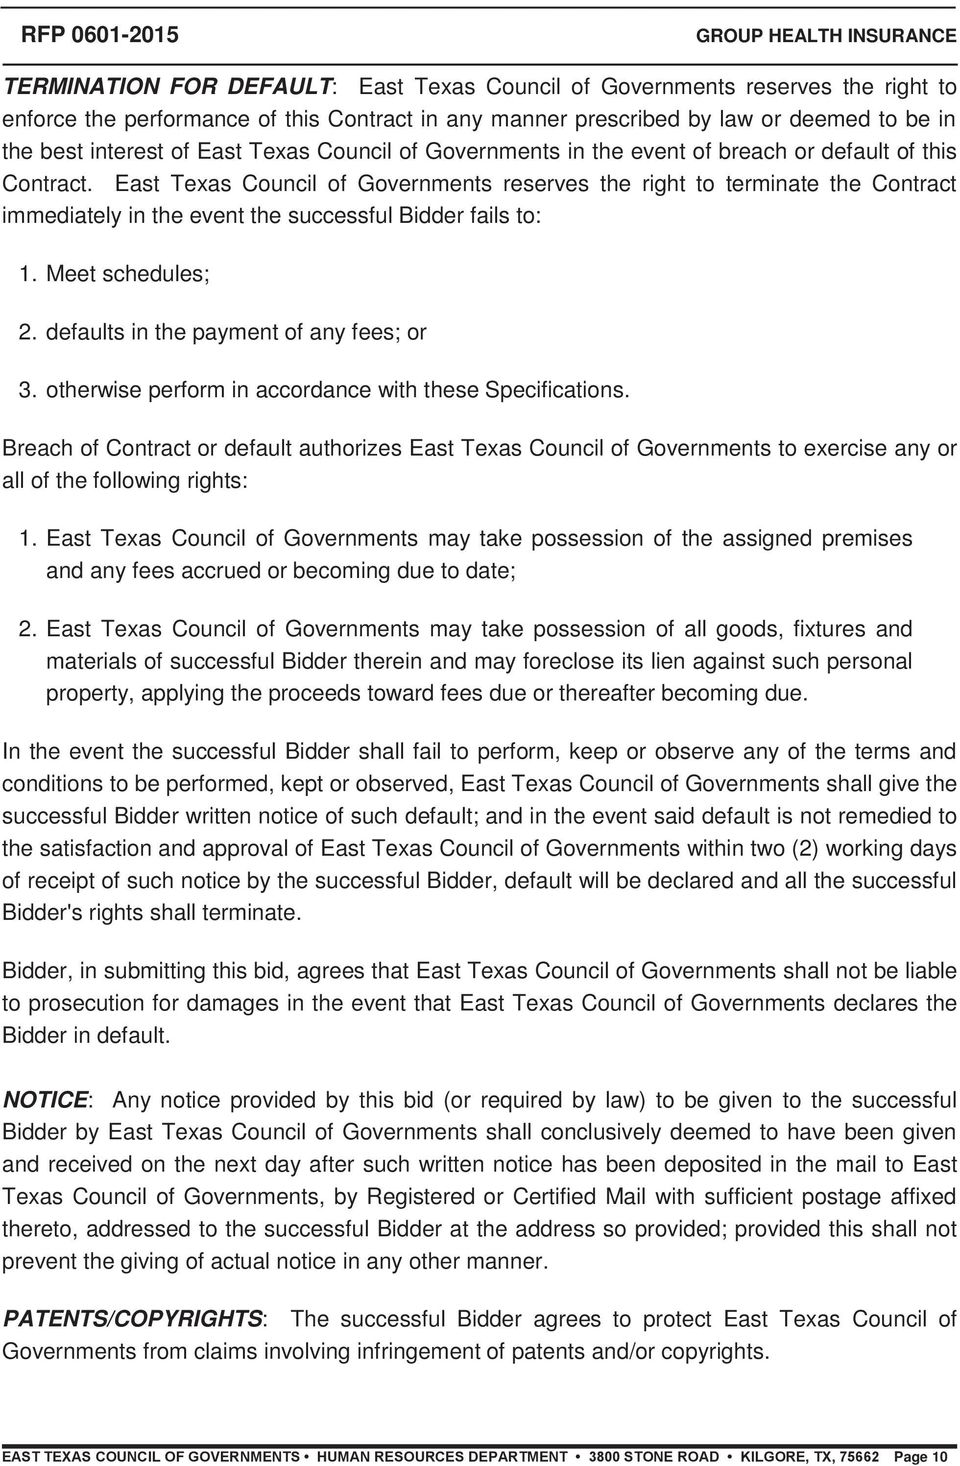 East Texas Council of Governments reserves the right to terminate the Contract immediately in the event the successful Bidder fails to: 1. Meet schedules; 2. defaults in the payment of any fees; or 3.